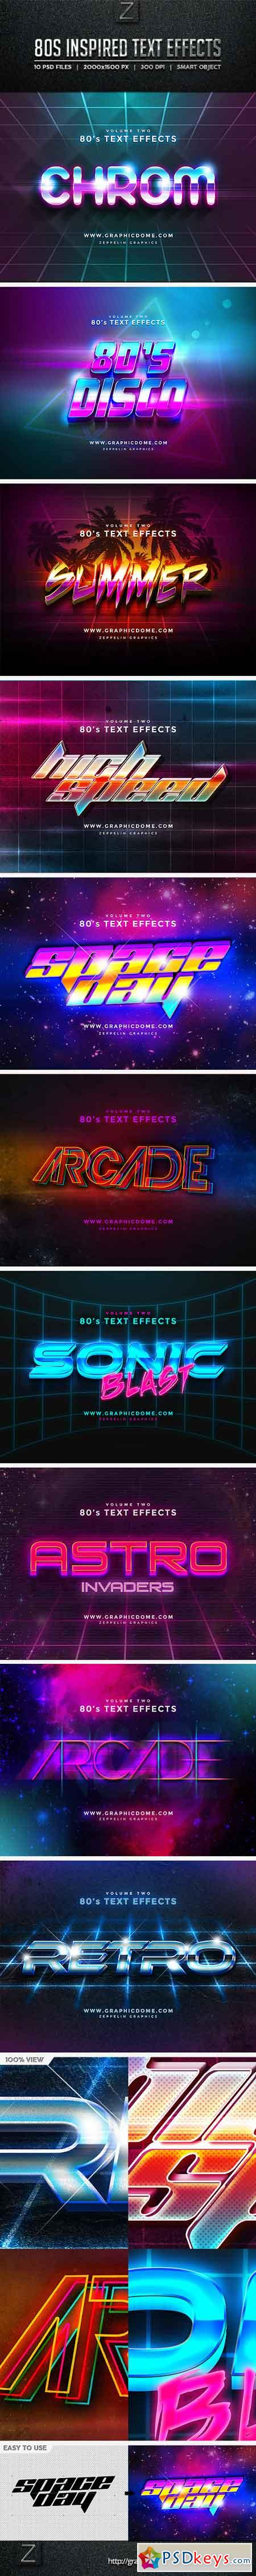 80s Text Effects 10256165